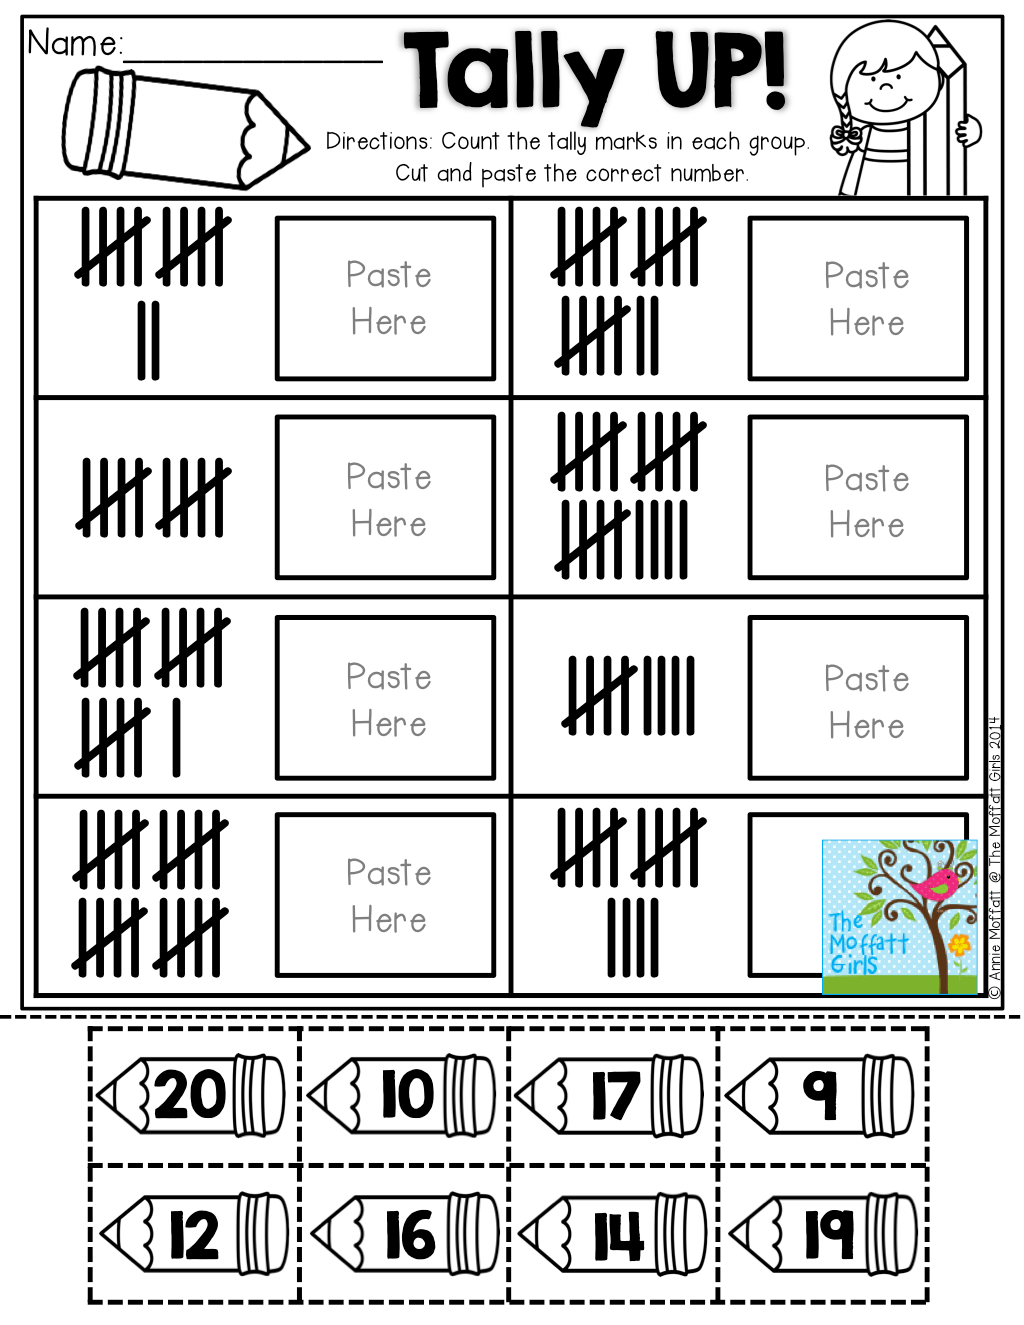 Tally UP! Count, cut and paste the number that matches the